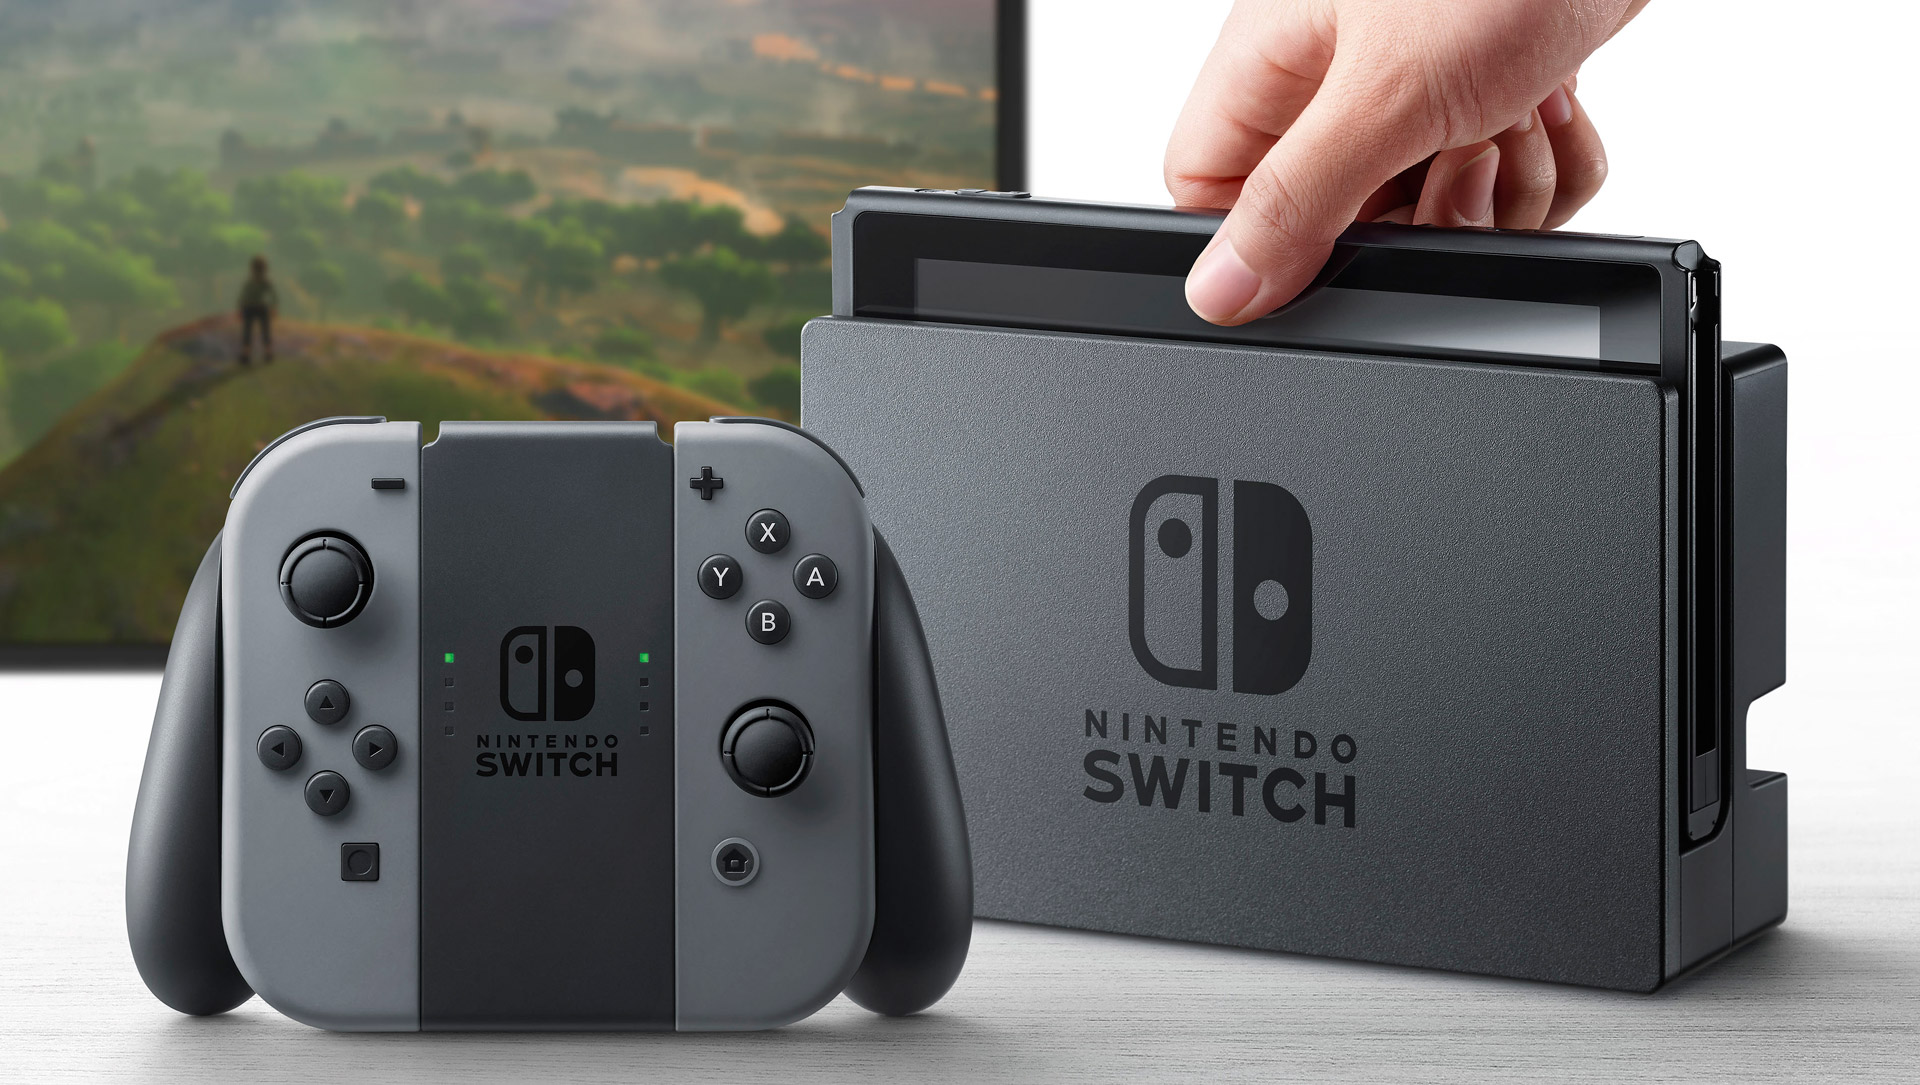 Nintendo Switch hardware